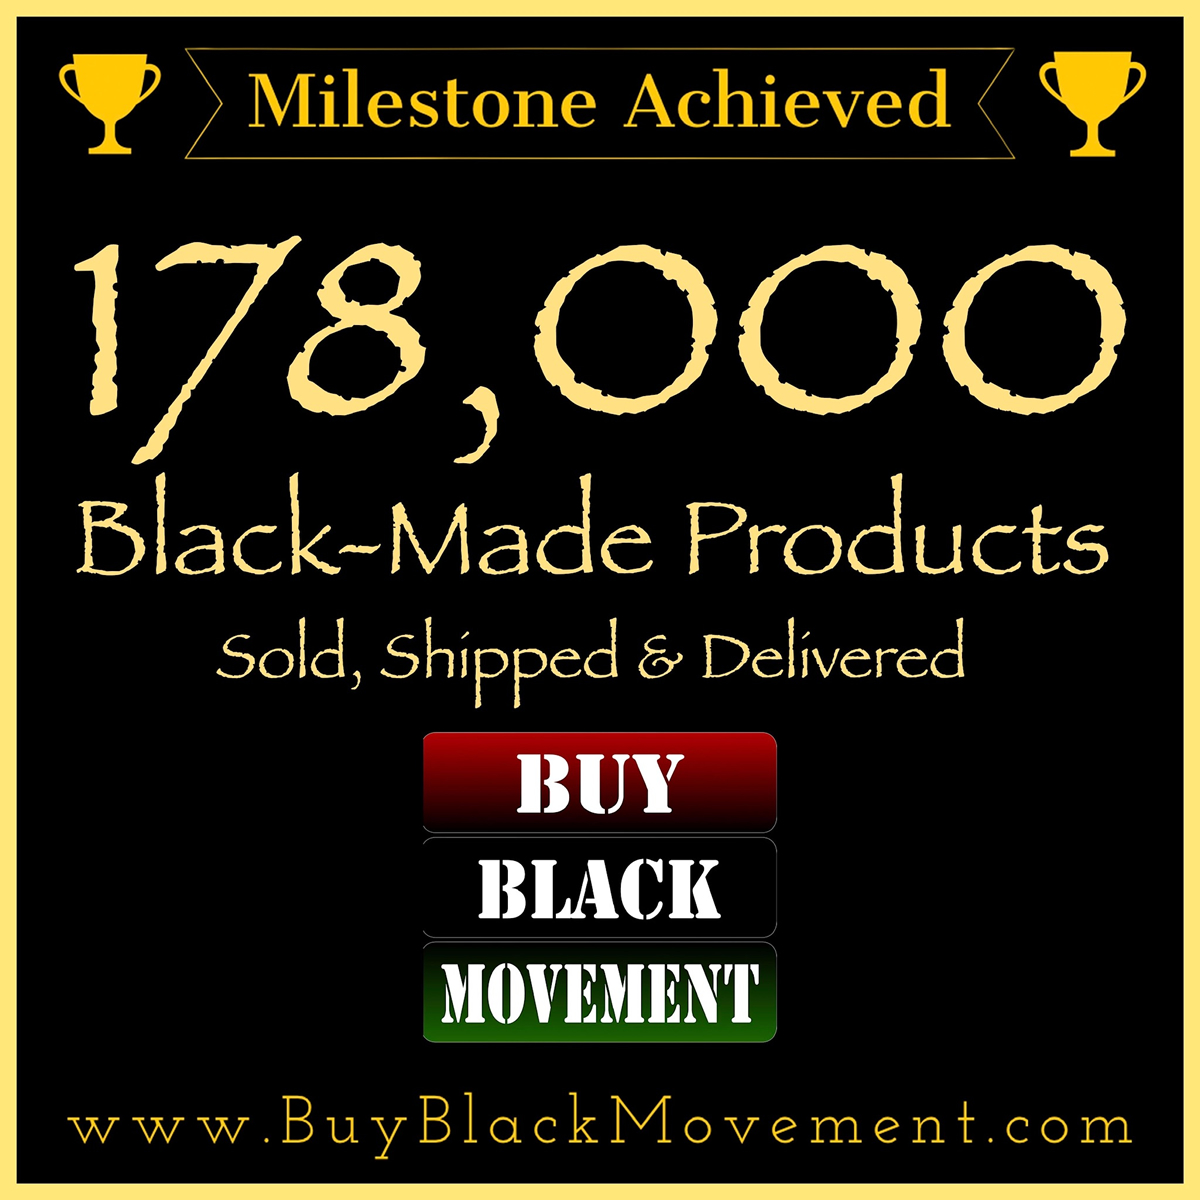 178,000 Products Sold